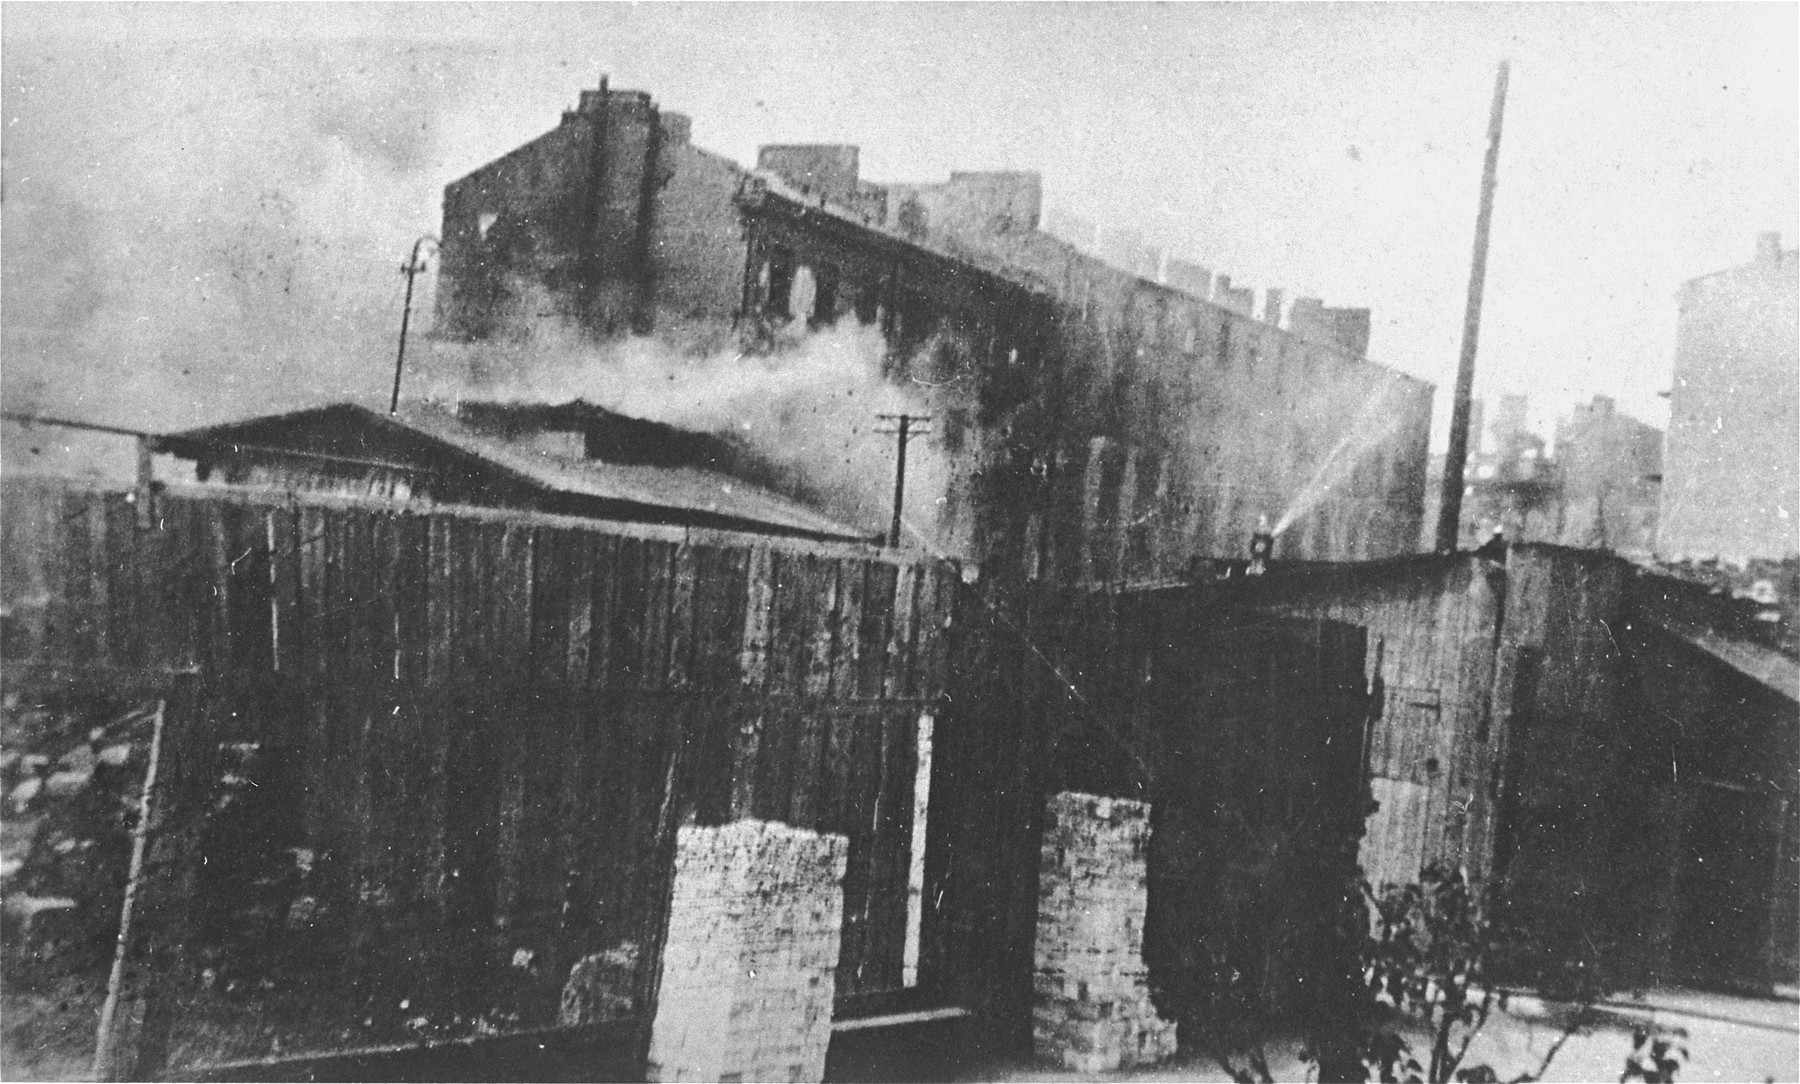 Apartment buildings burn during the suppression of the Warsaw ghetto uprising.